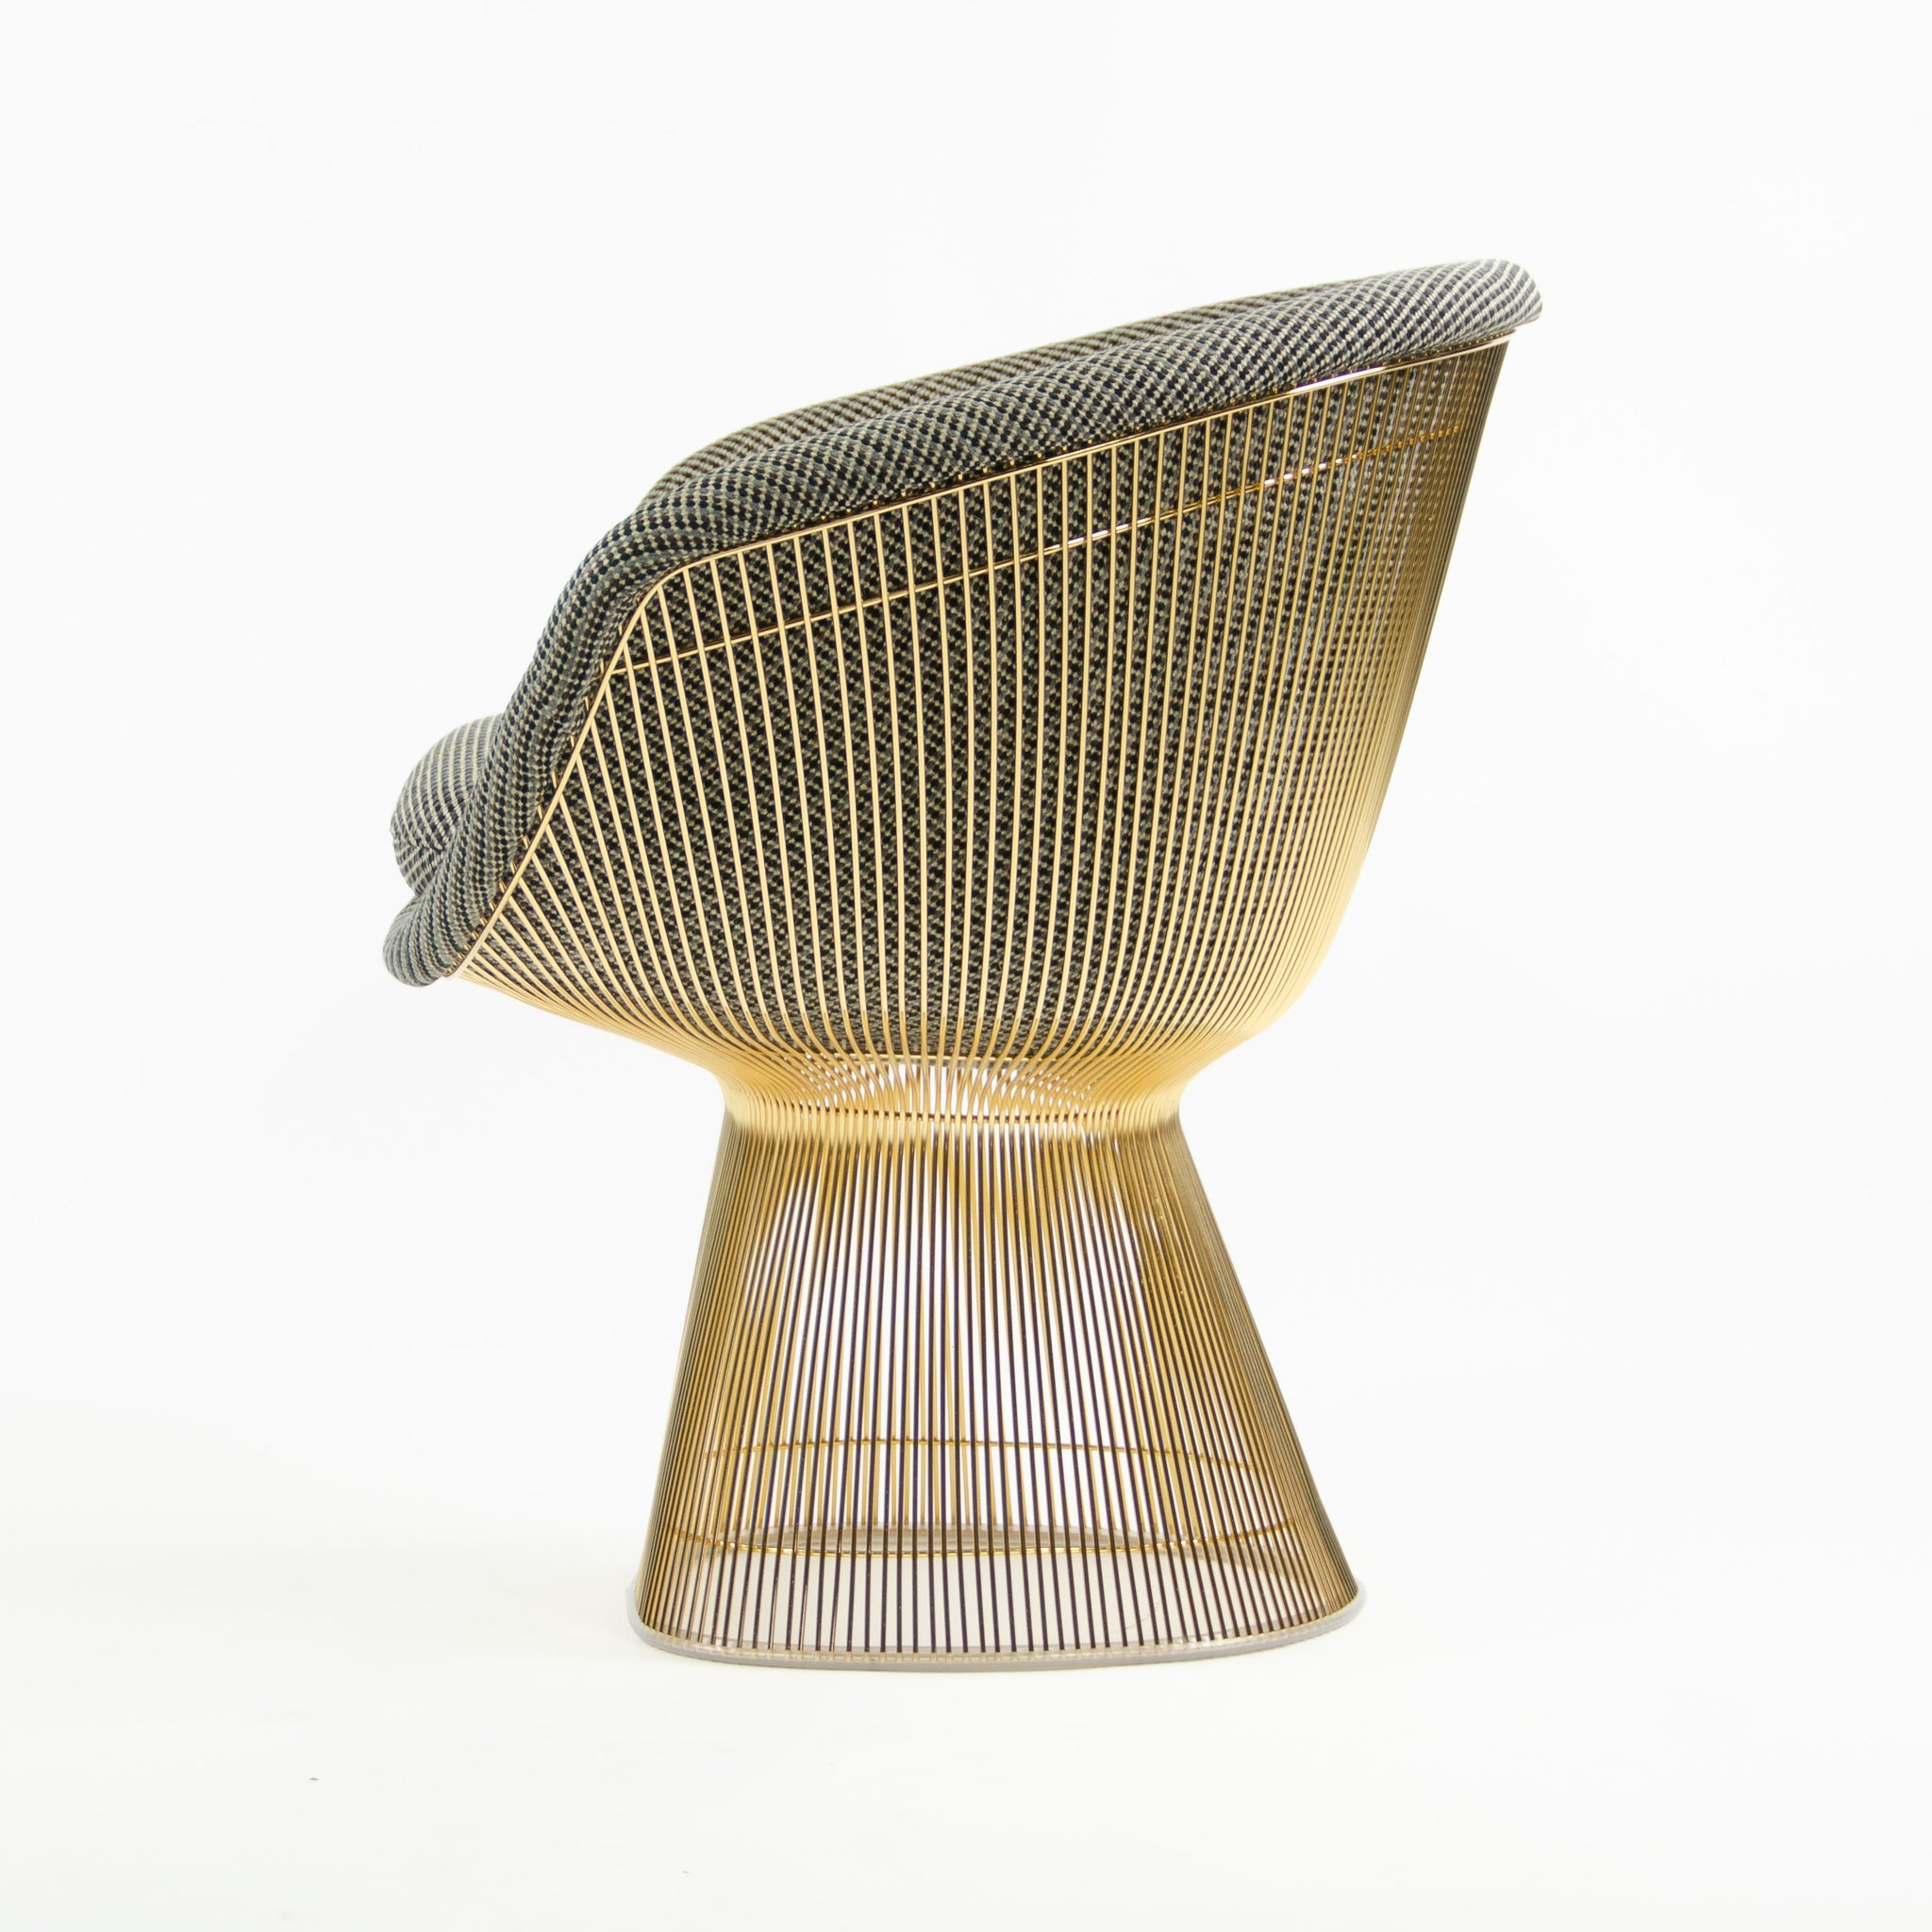 SOLD Brand New In Box Knoll Studio Warren Platner Lounge Chair in Gold